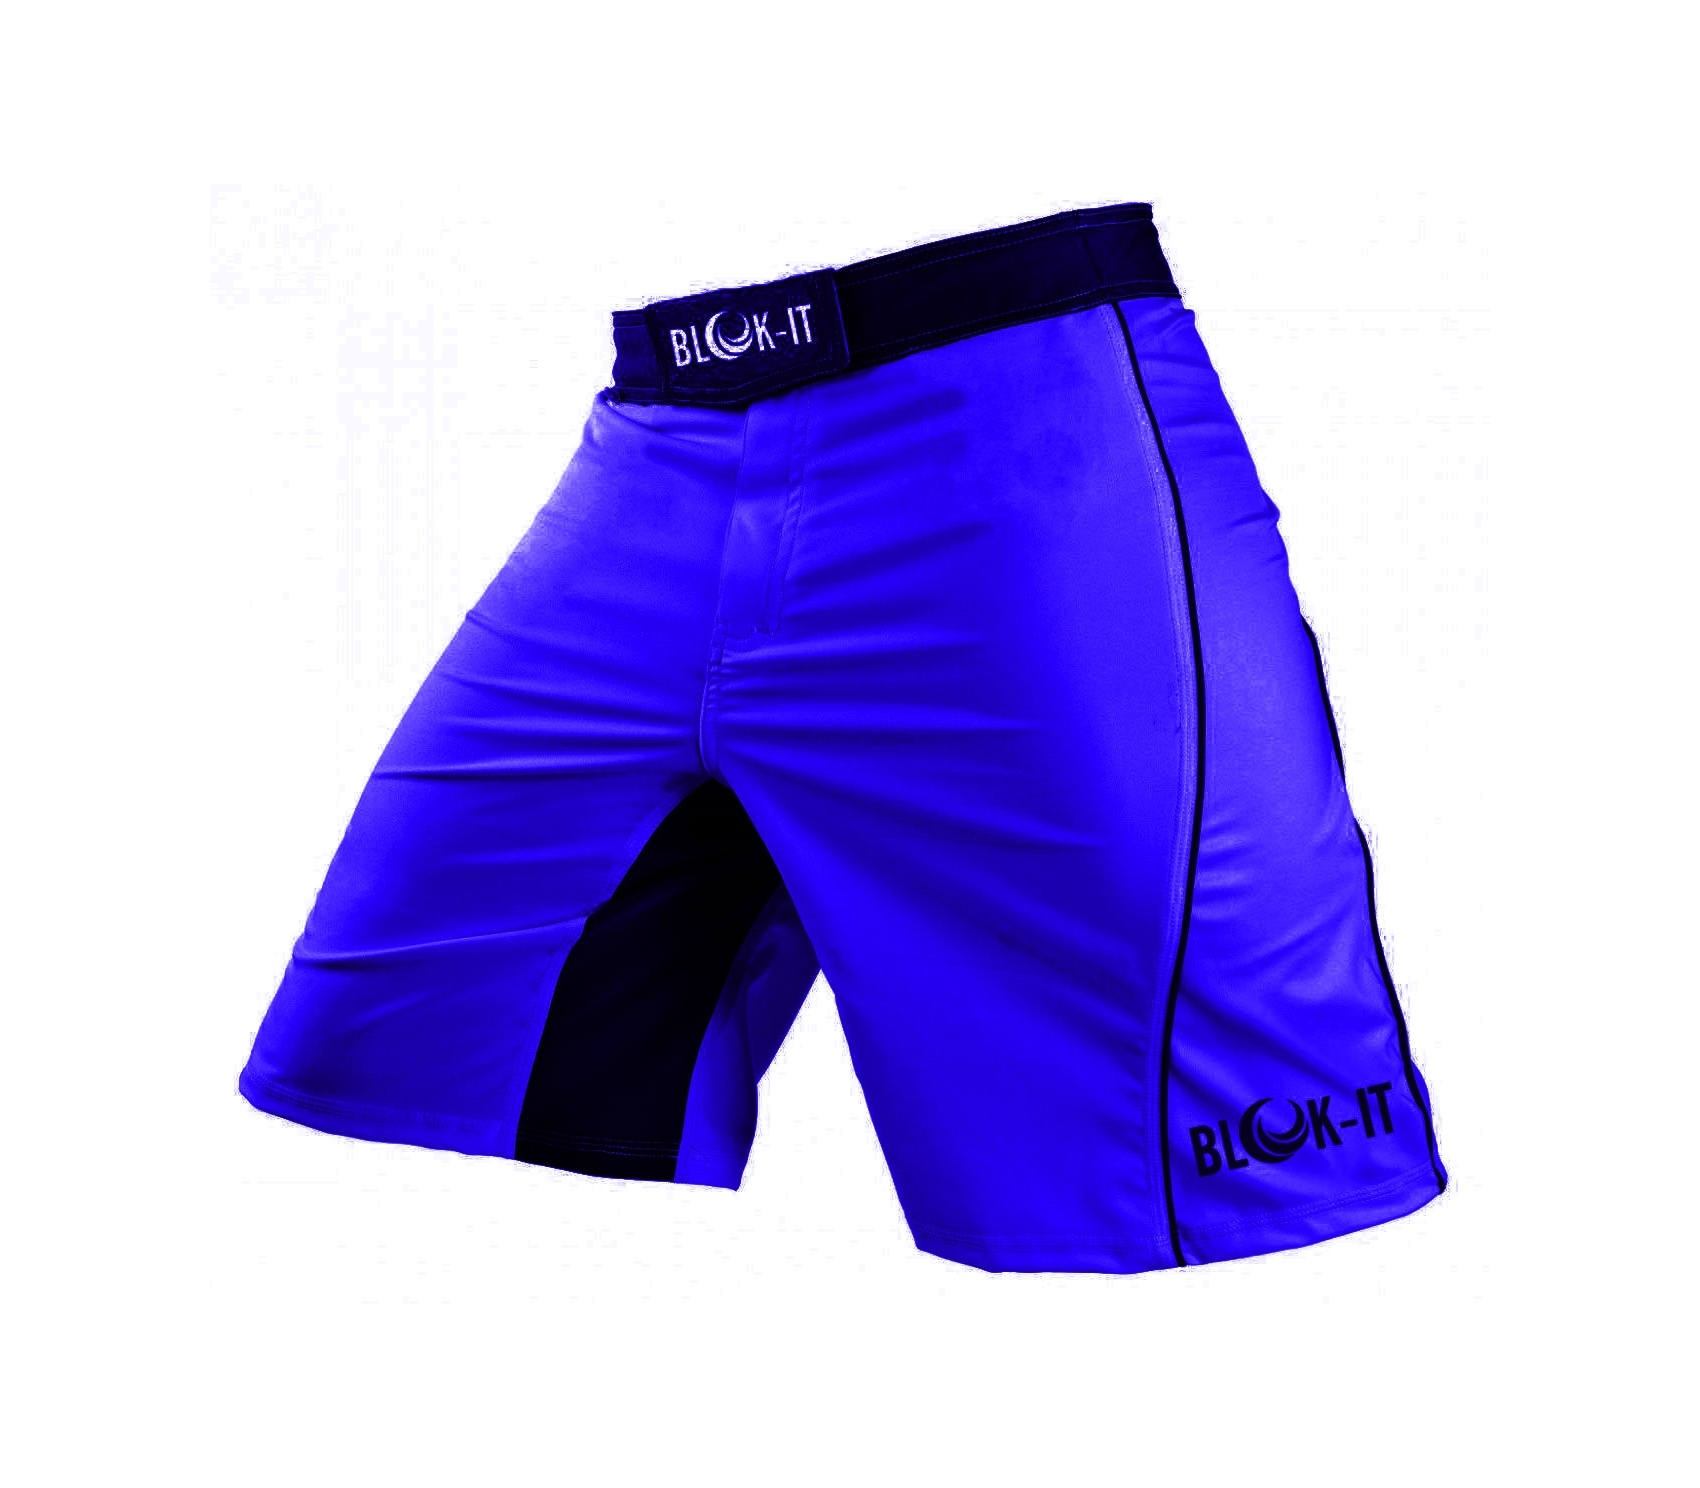 Yet Flexible and Comfortable for Everyday Training Surfing and Skateboarding Blok-iT Fight Shorts These Boxing and MMA Shorts are Competition Grade Great for all Martial Arts